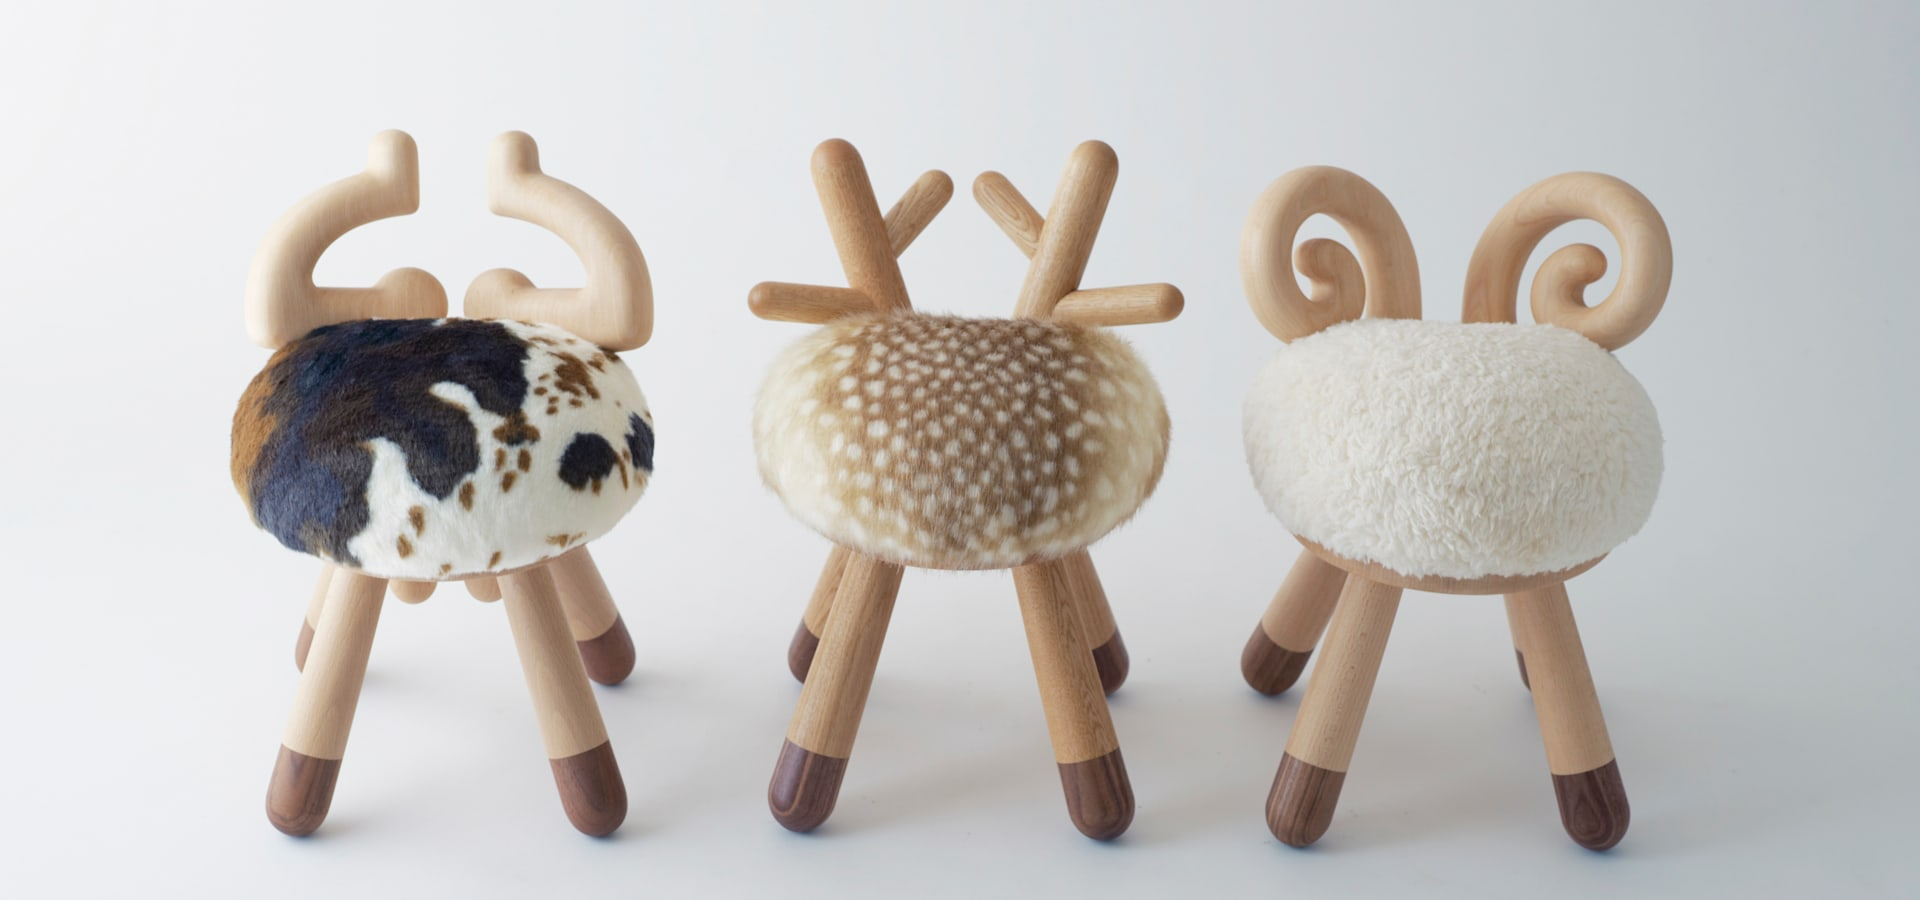 Bambi Chair / Sheep Chair / Cow Chair By Kaminau0026C | Homify